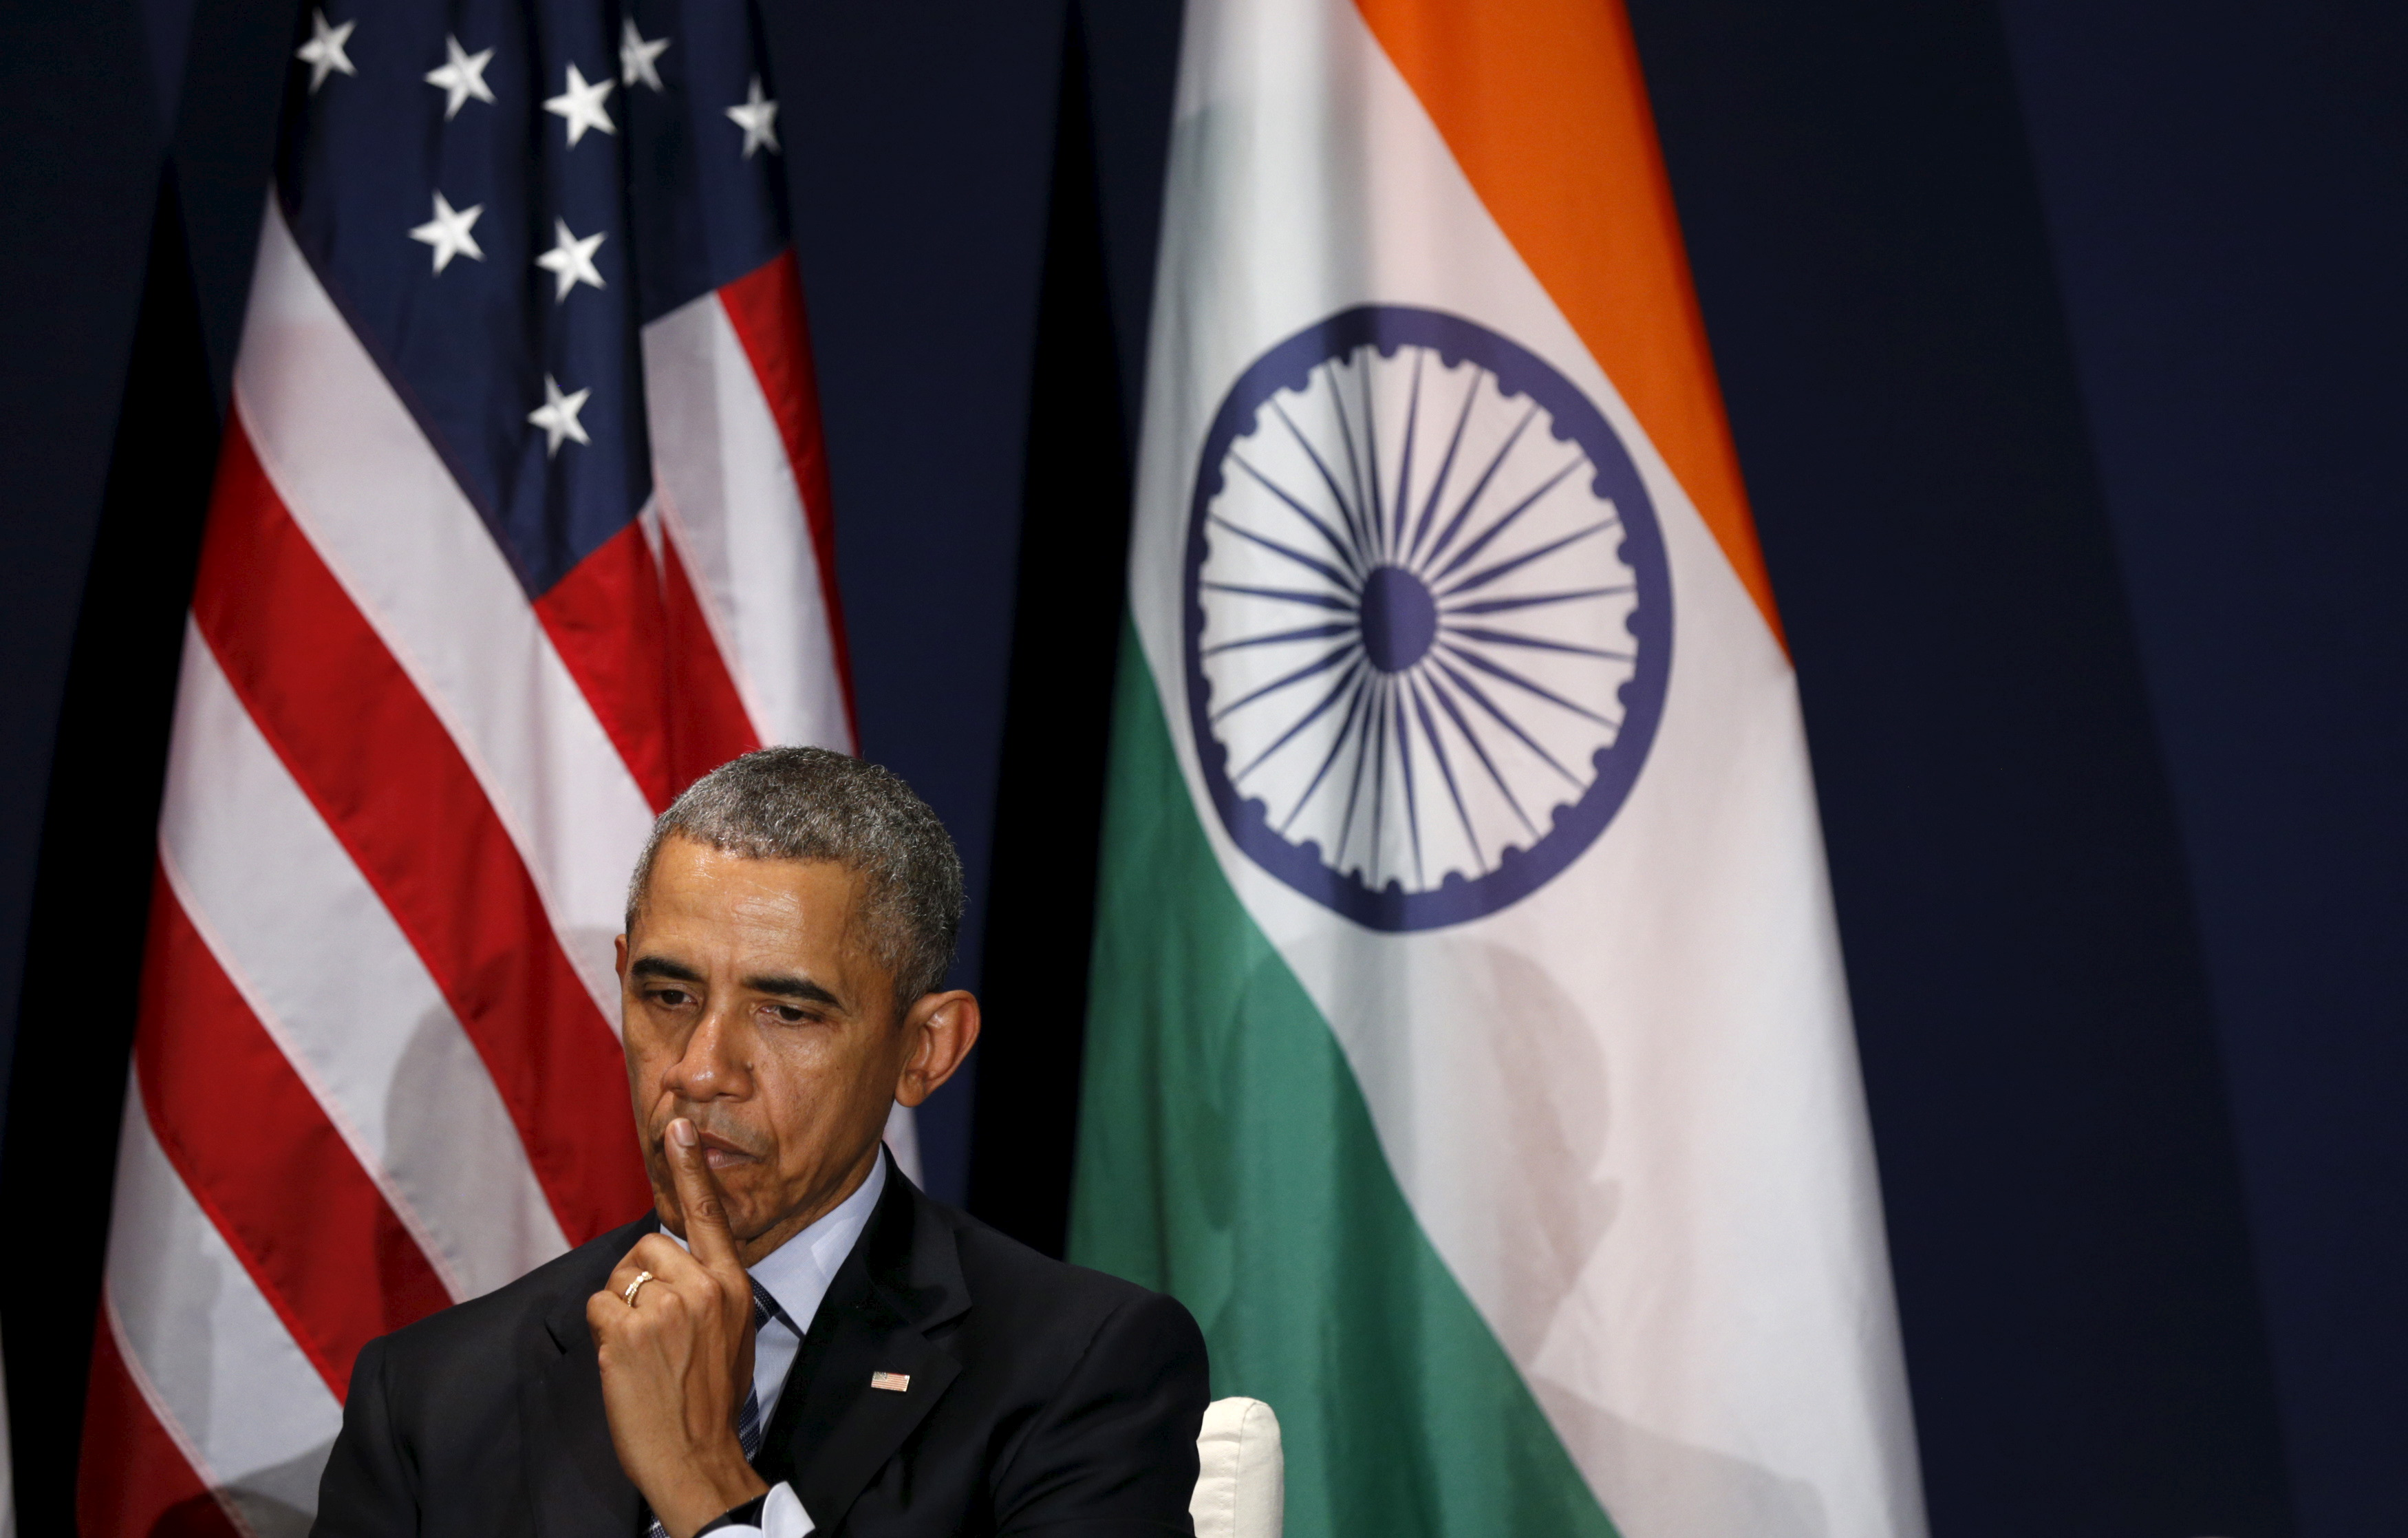 U.S. President Obama listens to Indian Prime Minister Modi speak during their meeting at the climate change summit in Paris